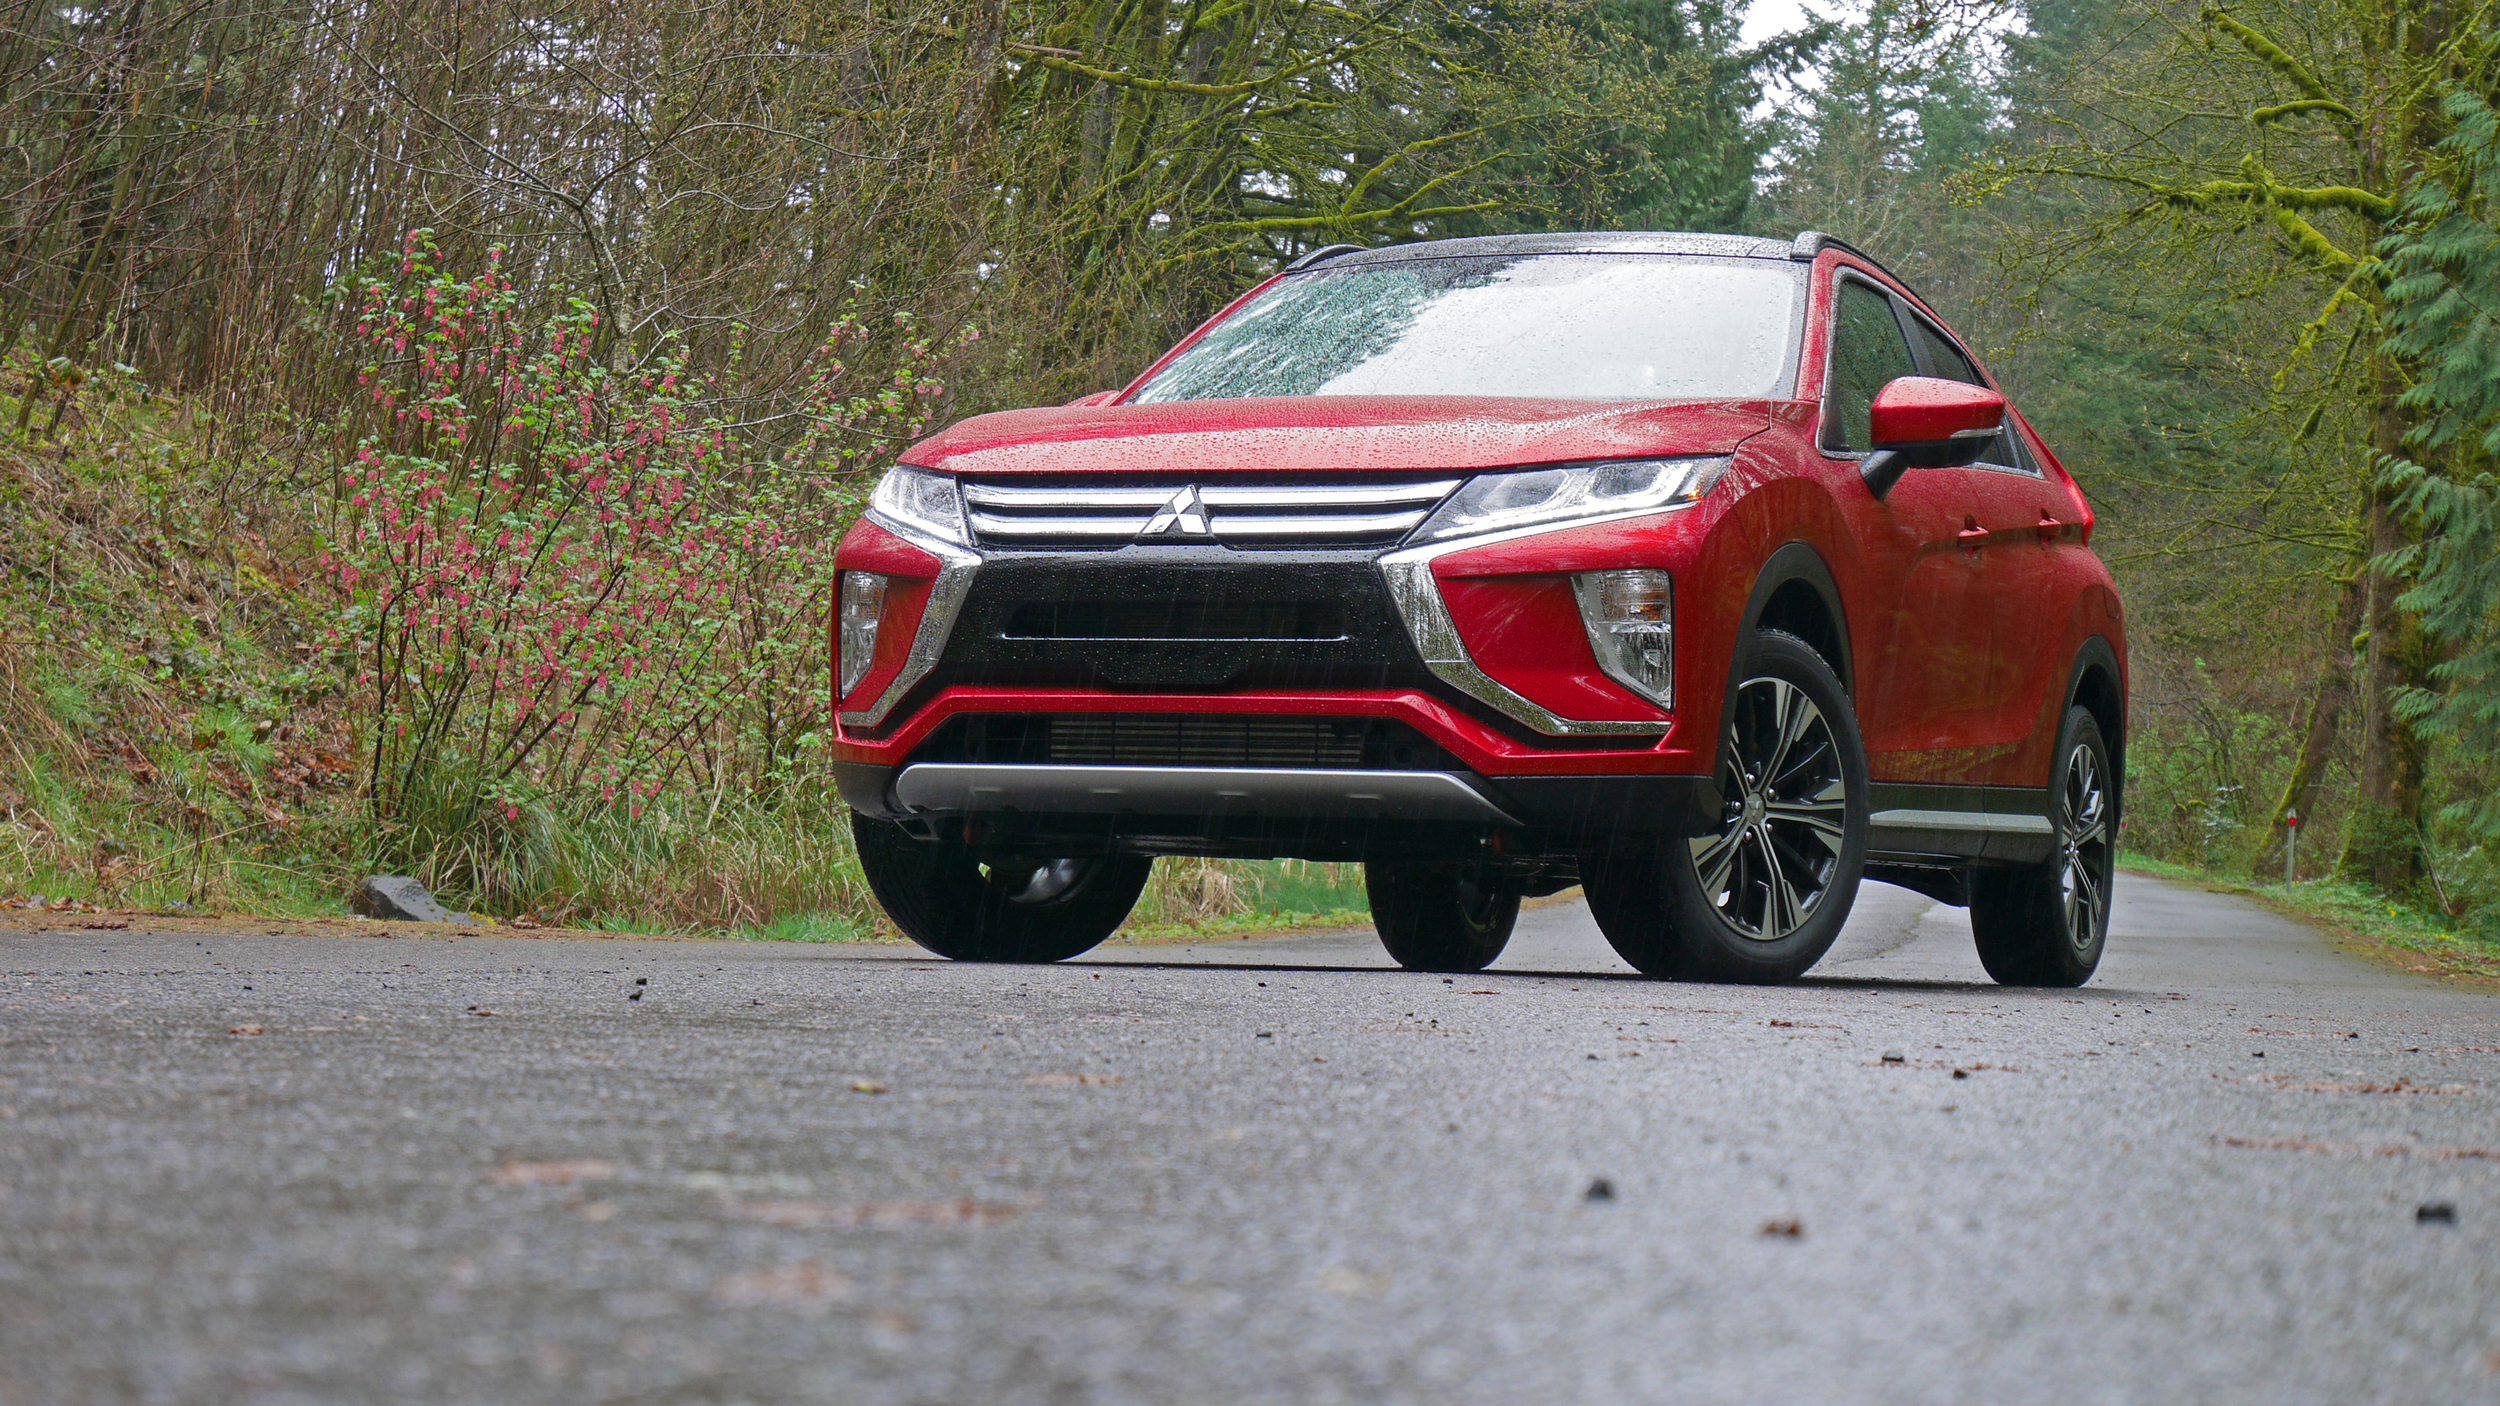 Mitsubishi Eclipse Cross Review | Forget the name, focus on the car